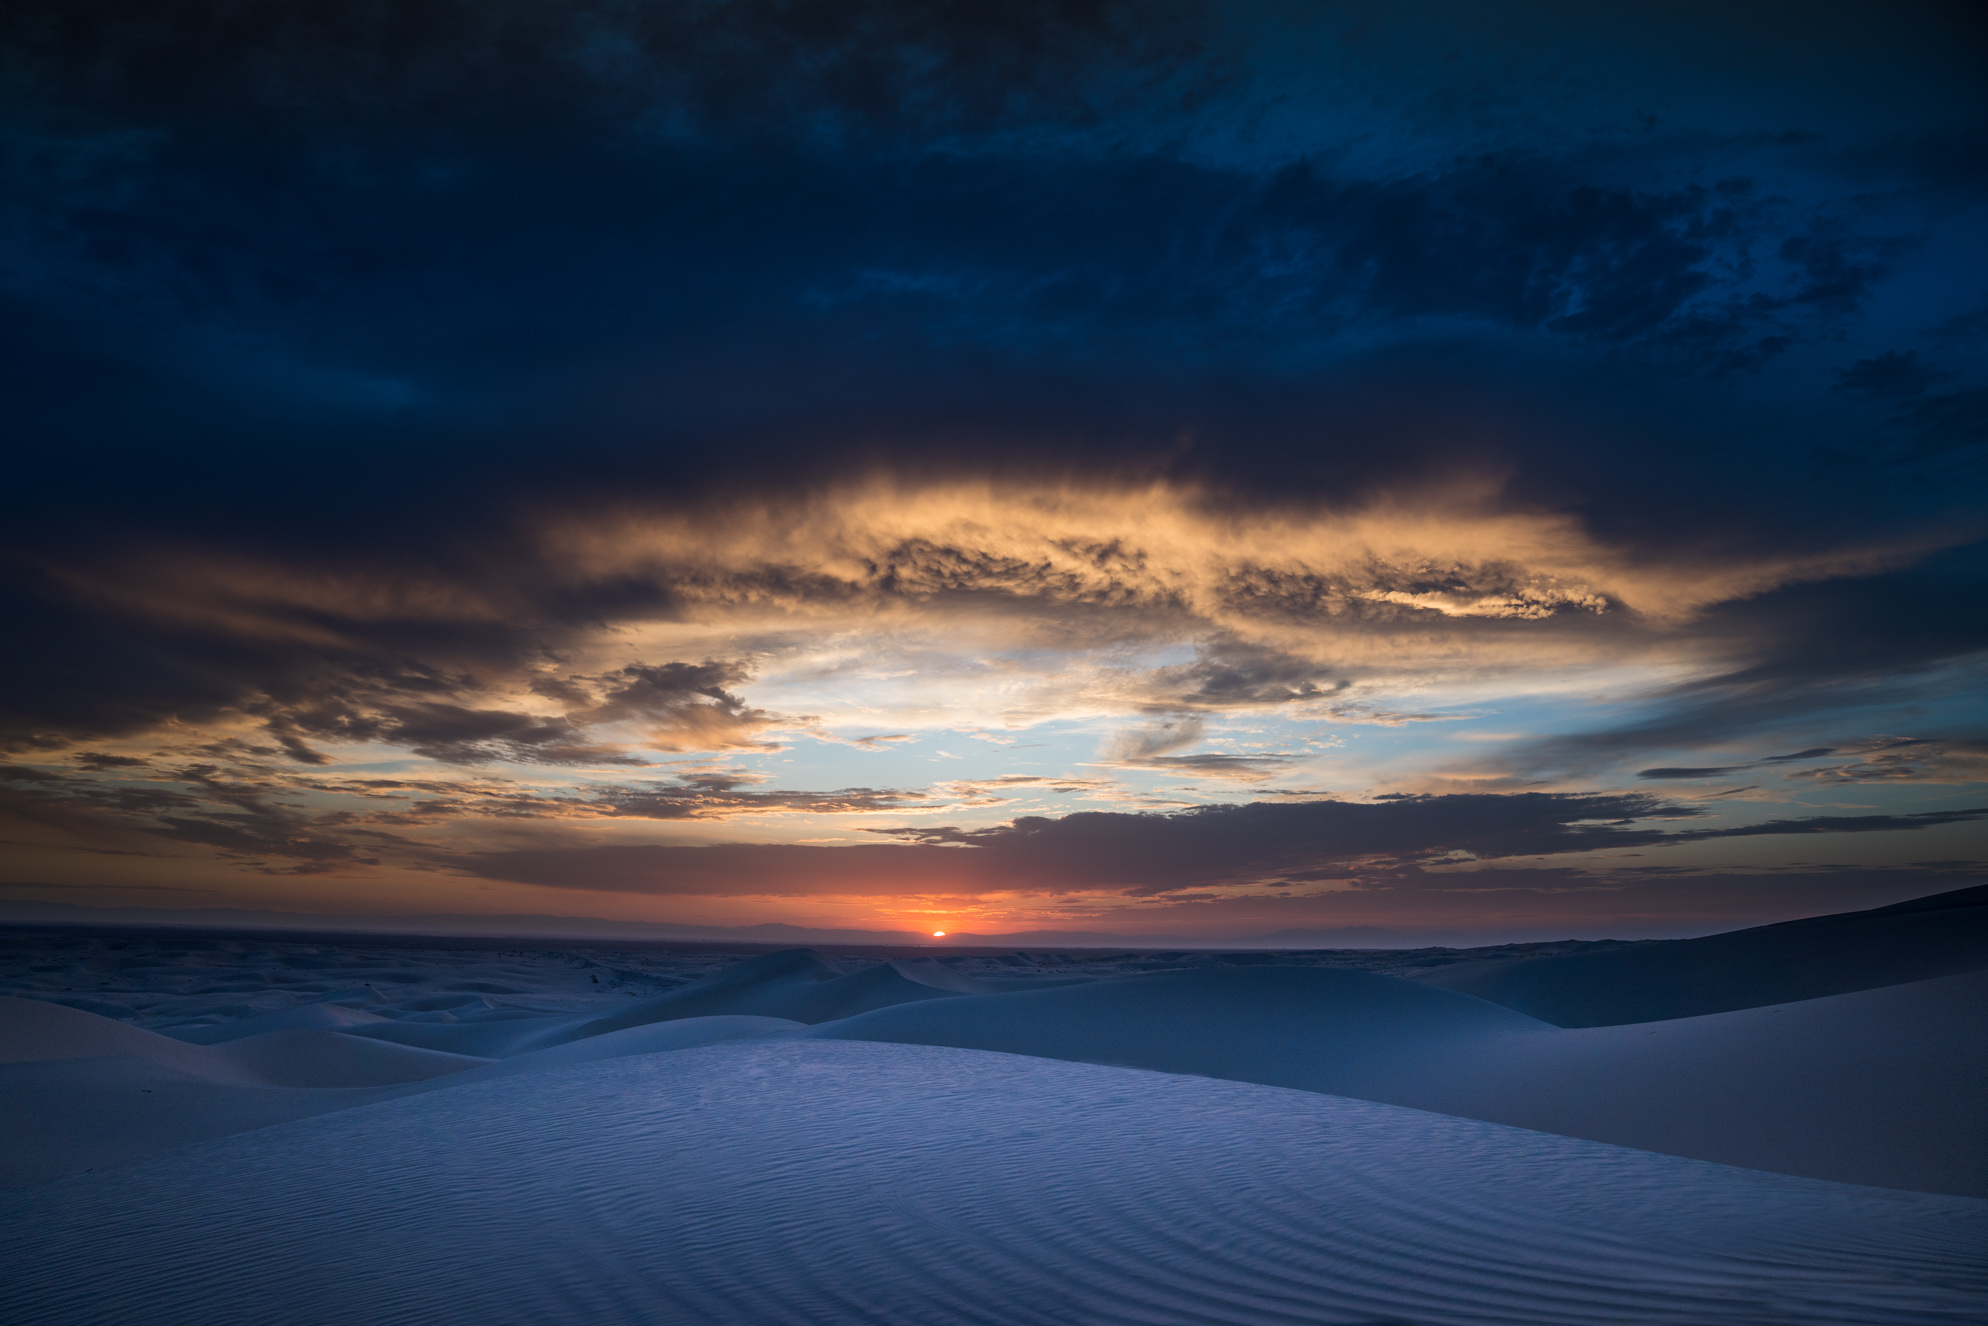 Glamis & The Imperial Sand Dunes, California, USA